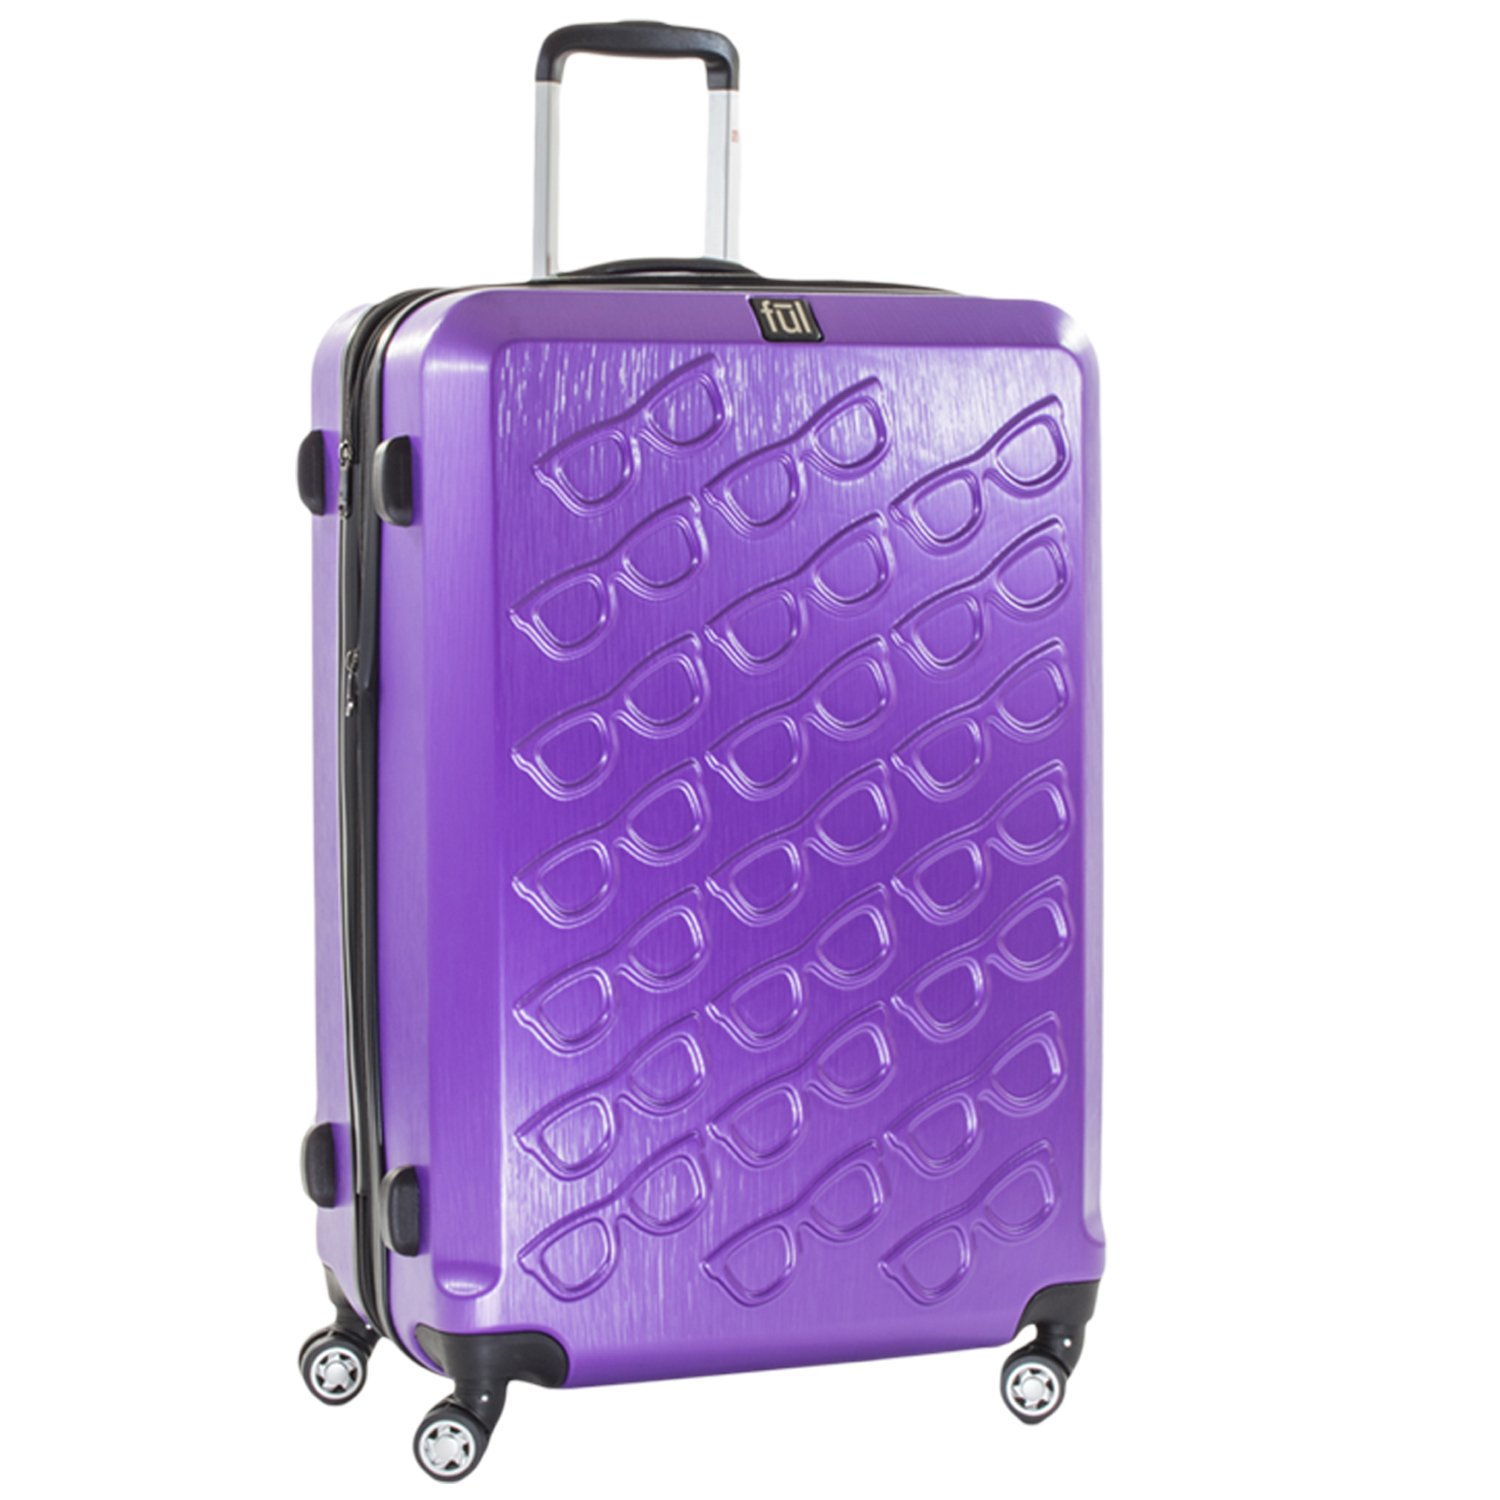 Ful Sunglasses 29in Spinner Rolling Luggage Suitcase Suitcase, Purple